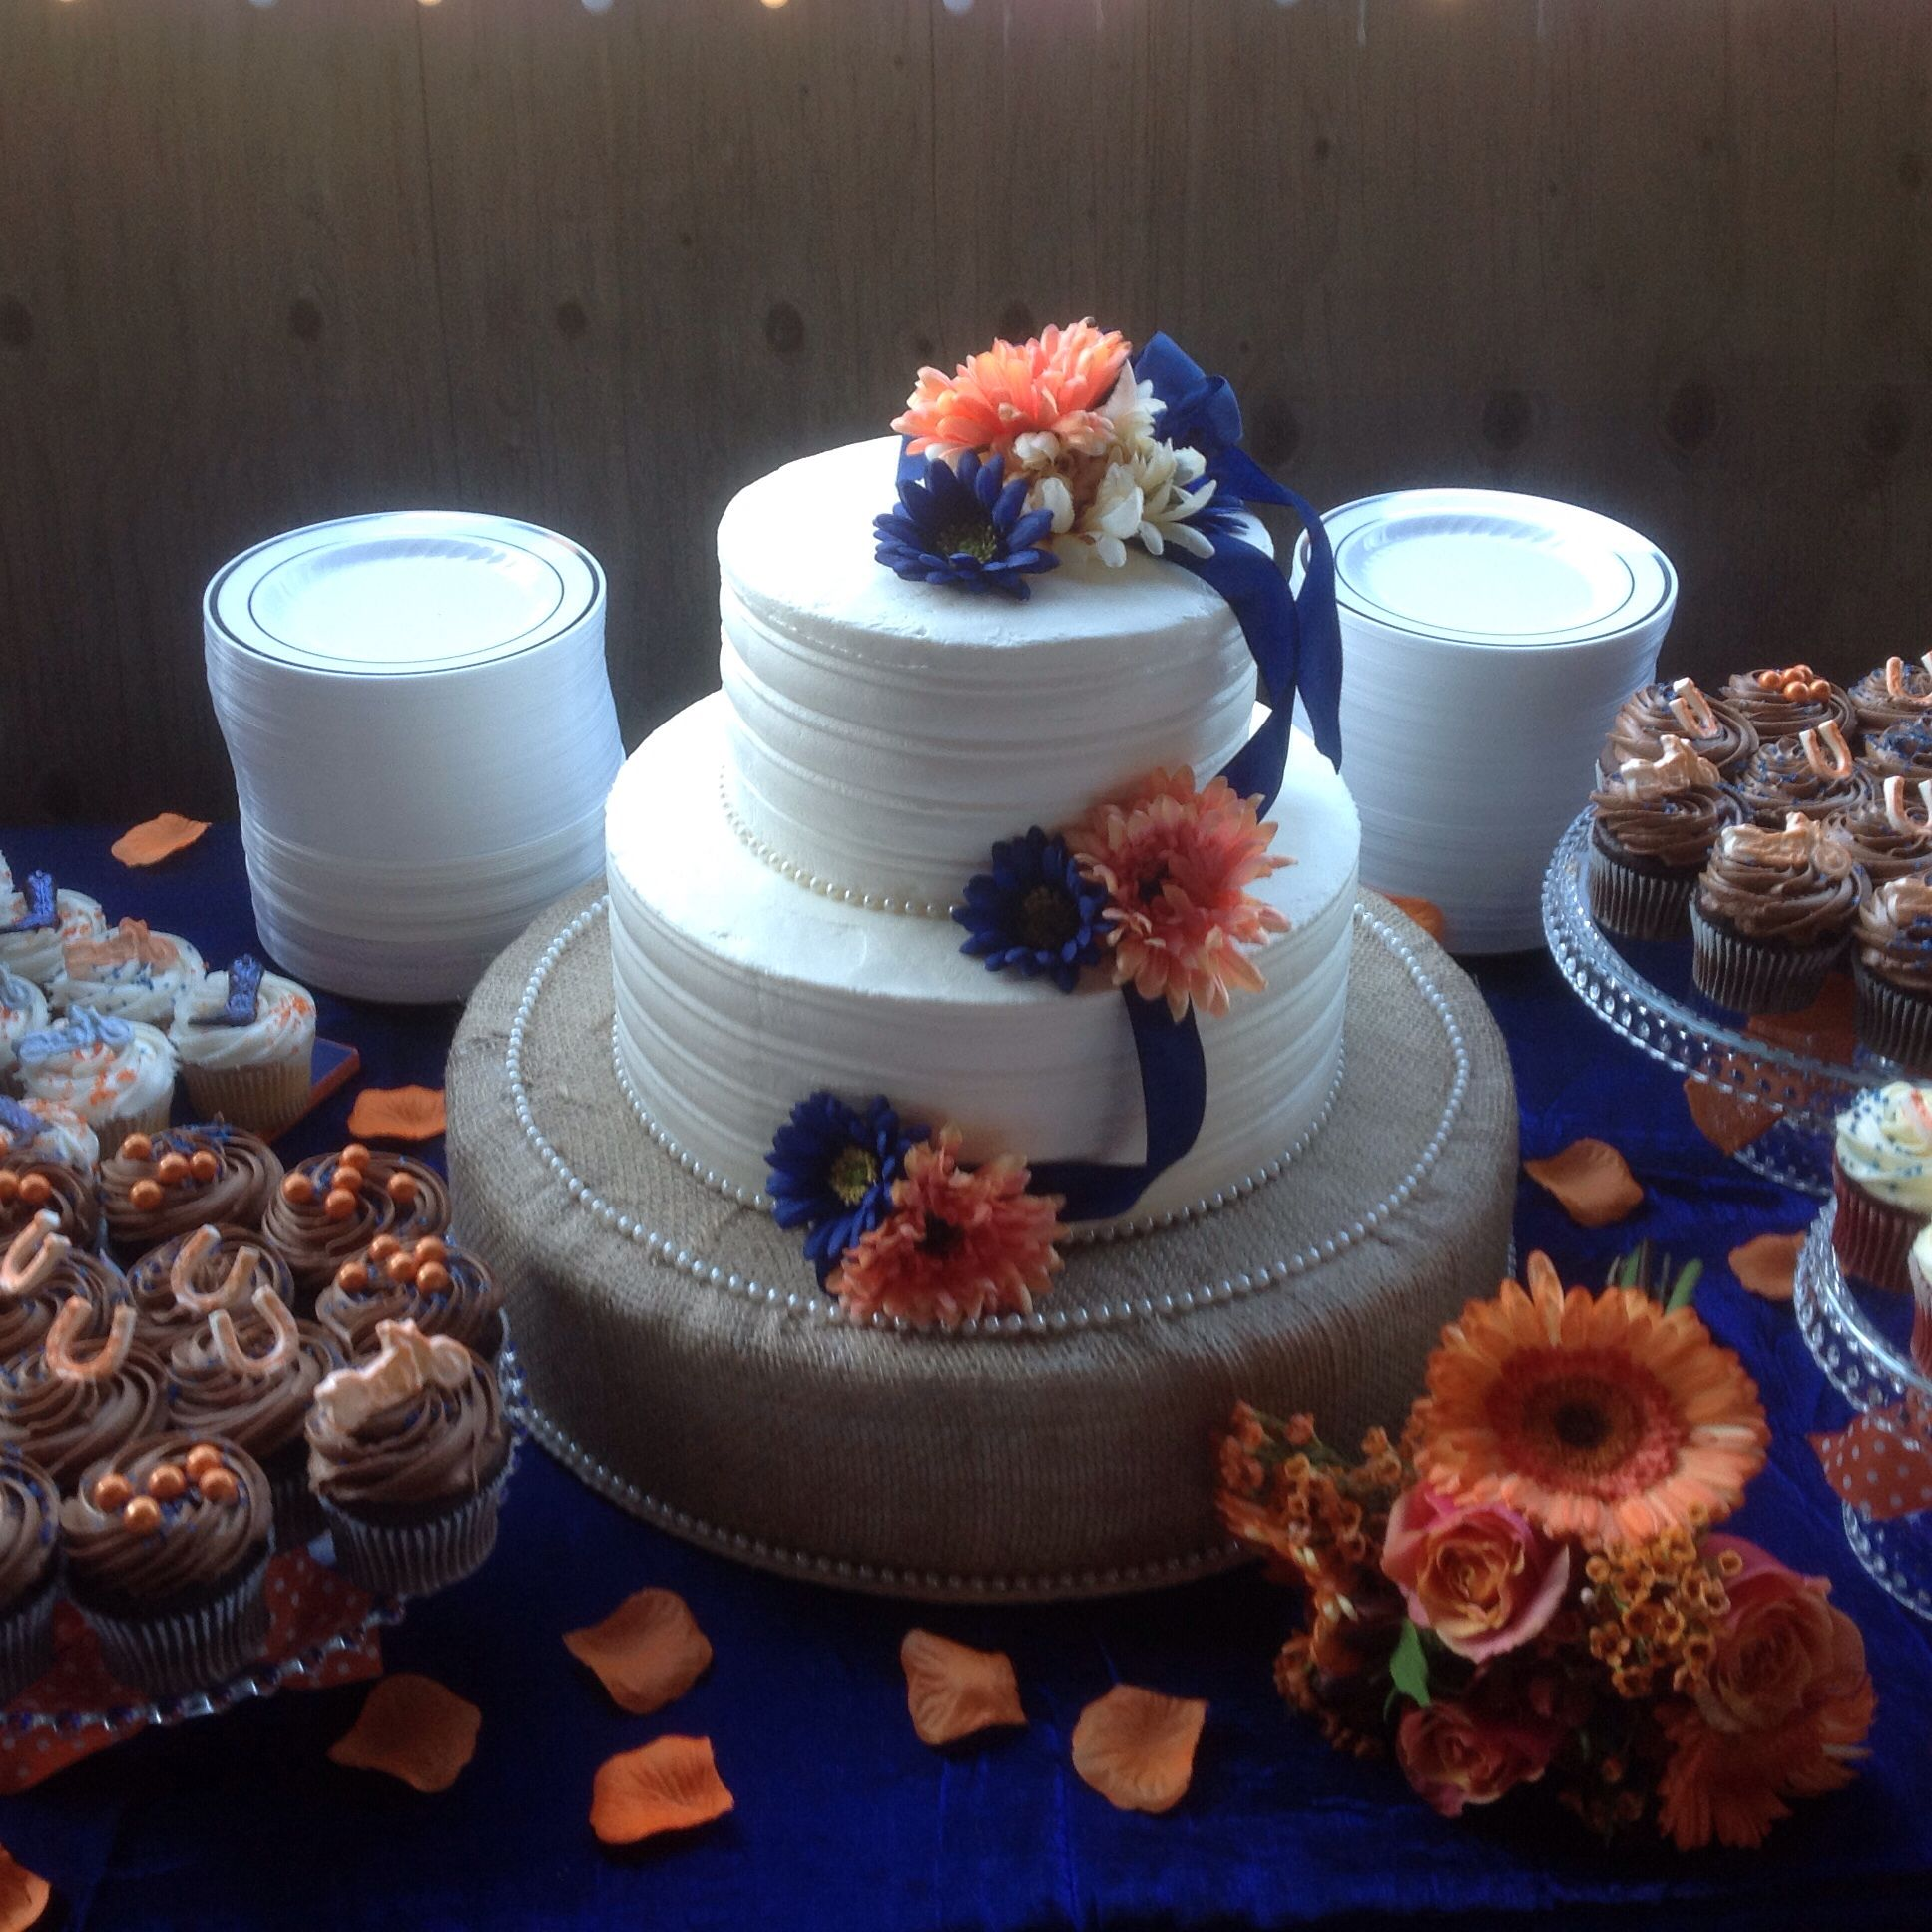 Western Wedding Cake Stand Styrofoam Cake Dummy Covered In Burlap